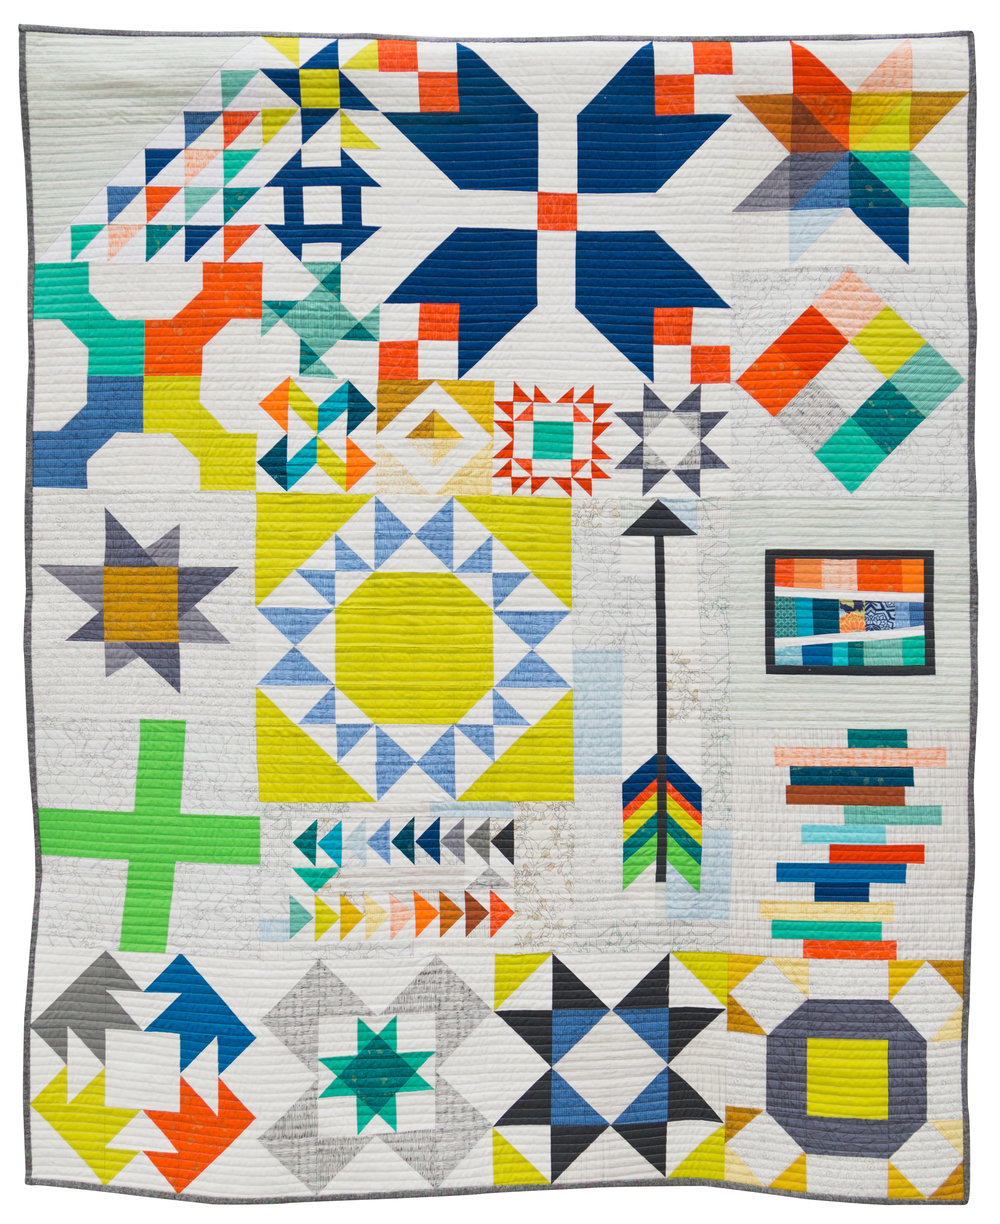 "1st Place: Long Island Modern Sampler  48"" x 59"" Pieced & Quilted by Kim Soper Centerport, New York Individual MQG Member"